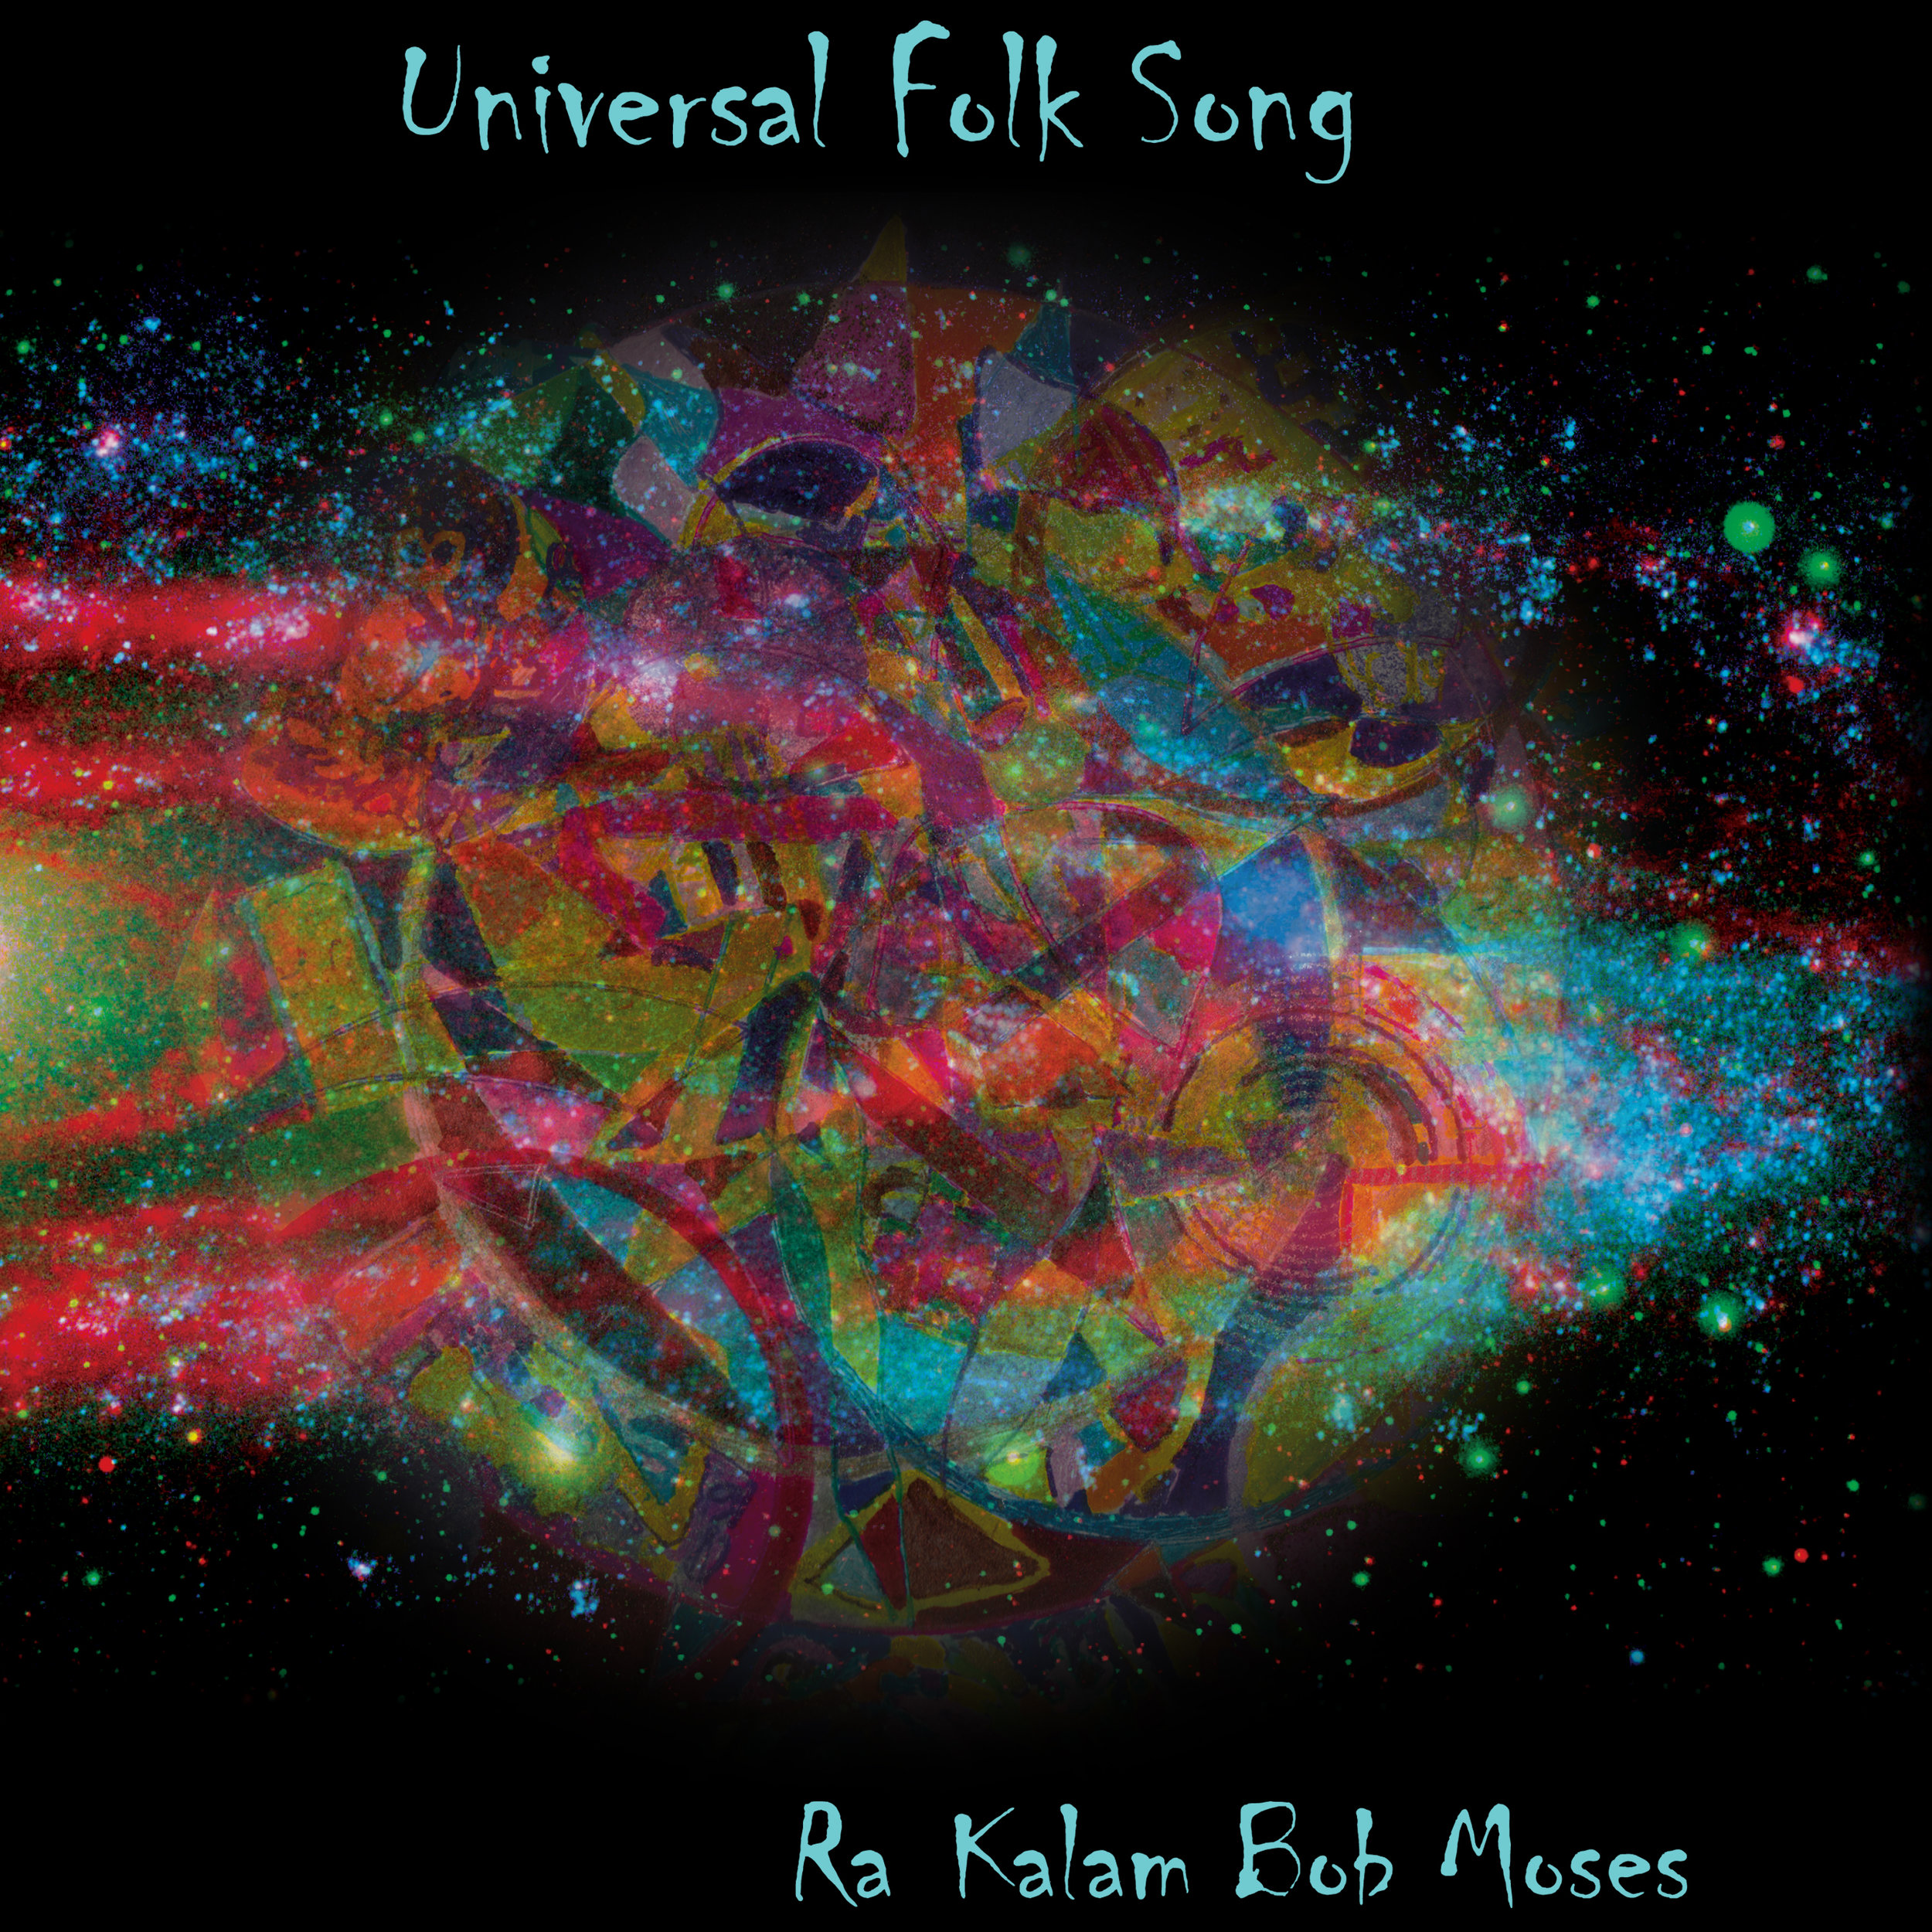 UNIVERSAL FOLK SONG    Compact Disc -    E-mail your order     Digital Downloads -    Amazon    -    iTunes     Release Date: 2012    Label: Ra-Kalam Record    Jacques Schwartz-Bart - Tenor saxophone    Rossen Zahariev - Trumpet, Cornet, musette    Jim Hobbs - Alto saxophone    Stoyan Royanov - Clarinet    Scott Robinson - Bass saxophone    Stan Strickland - Tenor sax, soprano sax, bass, clarinet, vocals    Raqib Hassan -Tenor saxophone, musette    Gergana Velinova - Vocals    John Medeski - Piano    Tor Snyder - Guitar    Chris Wood -Bass    Don Pate - Bass     SAMPLE